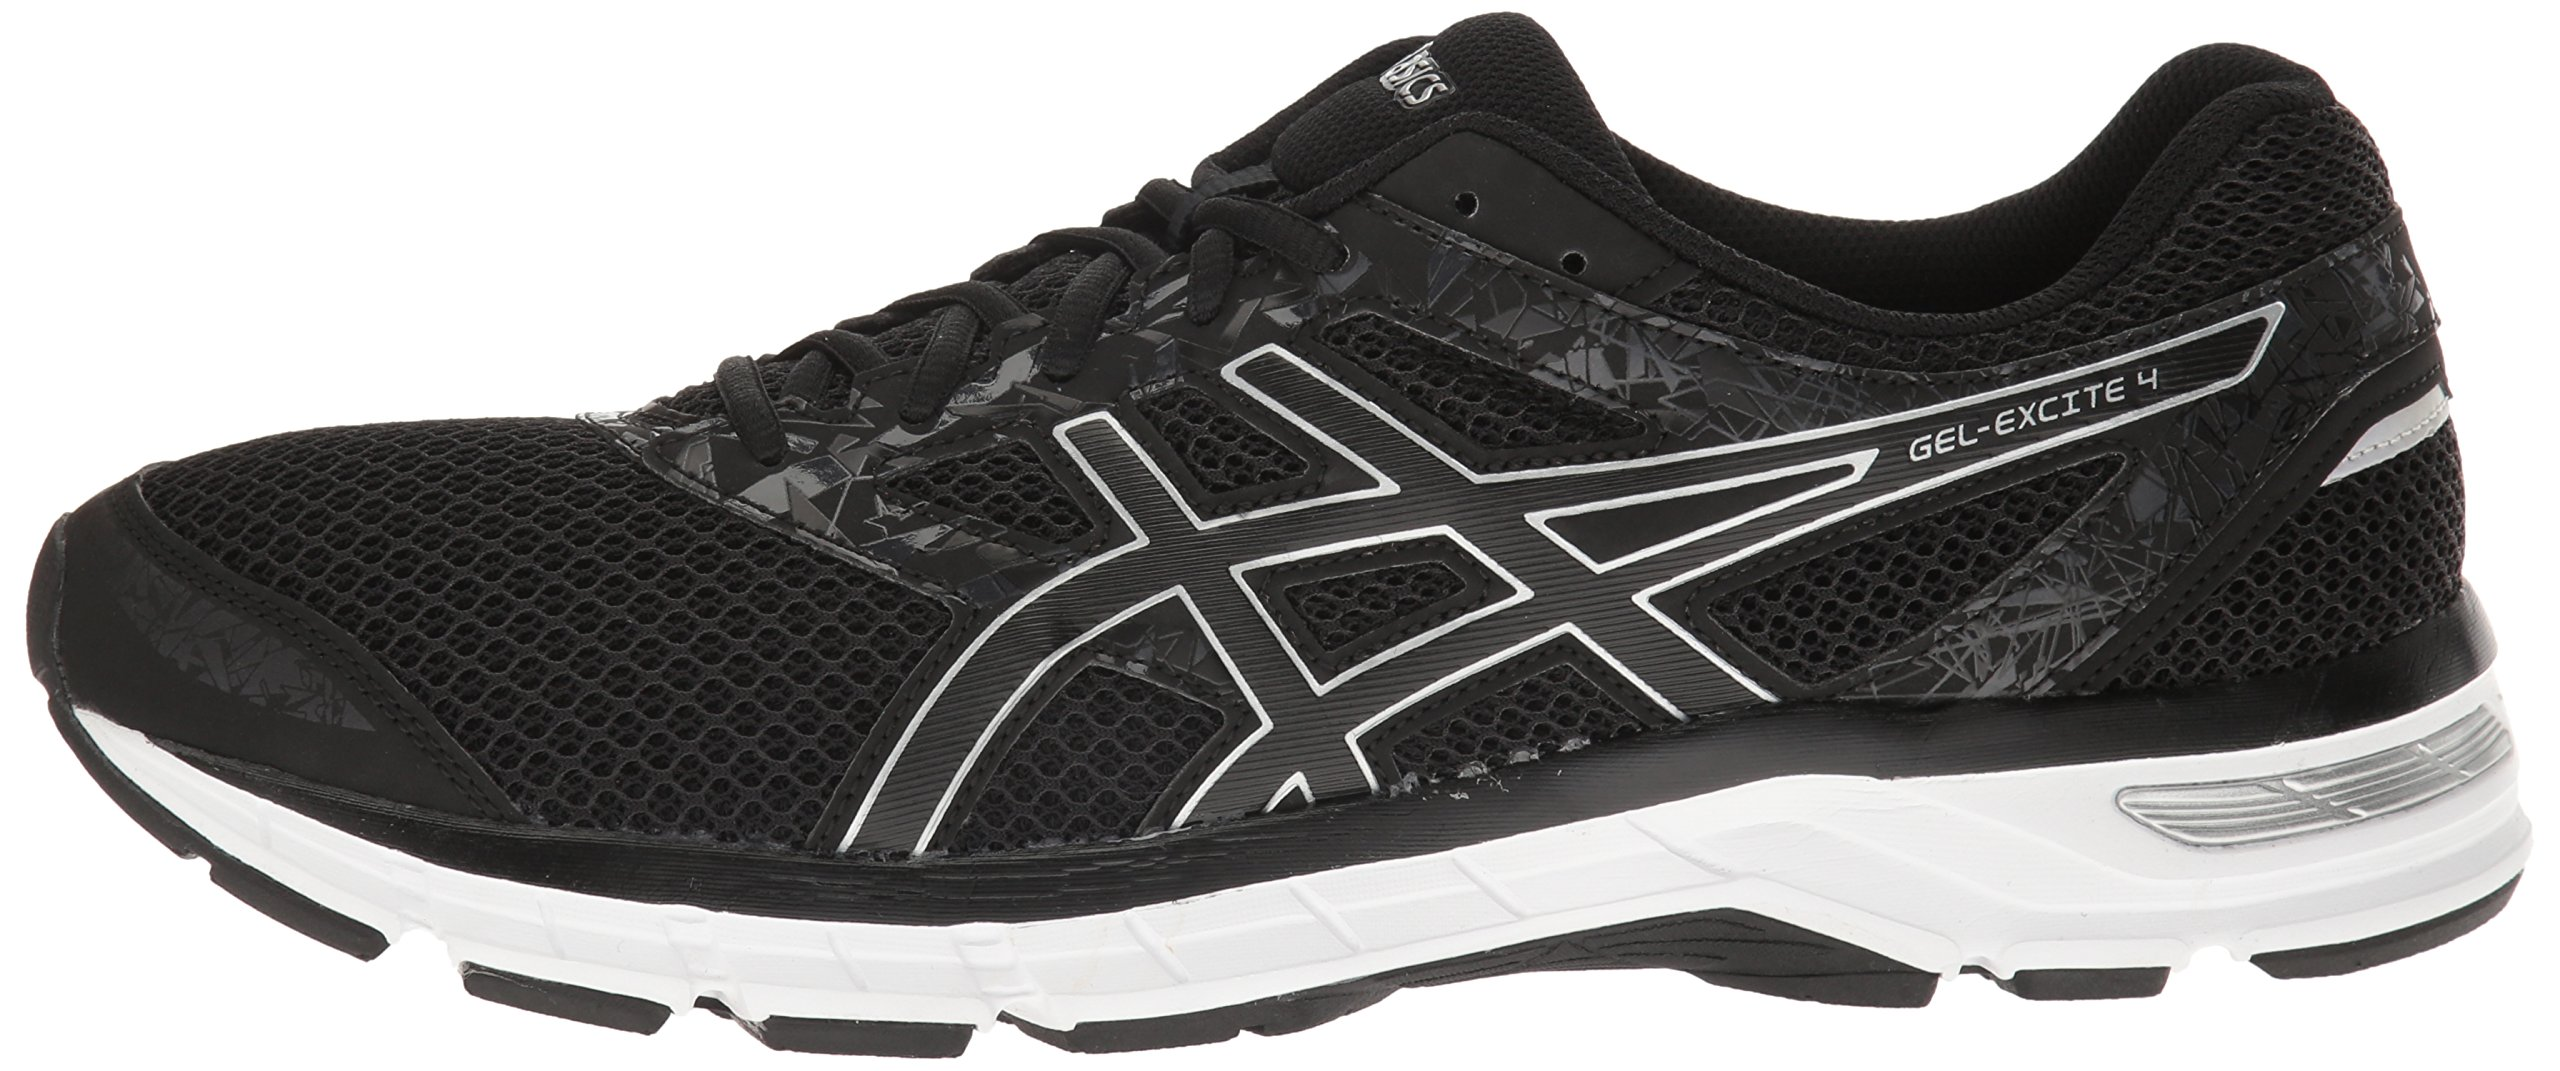 85f01c333 ASICS Men s Gel-Excite 4 Running Shoe - GEL-Excite 4-M   Road Running    Clothing